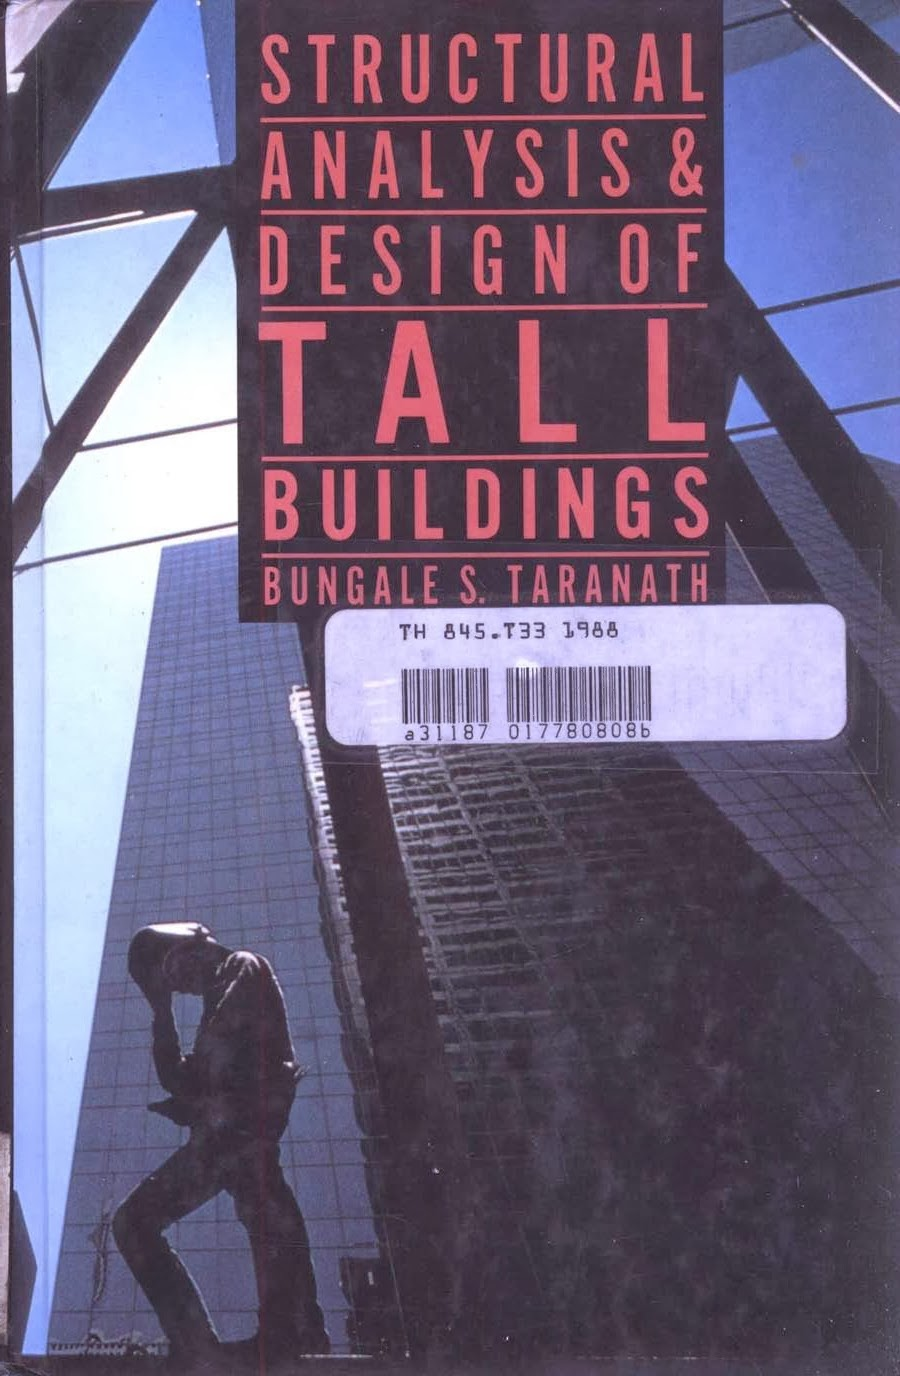 Book: Structural Analysis and Design of Tall Buildings by Bungale S. Taranth(http://www.engineersdaily.com)